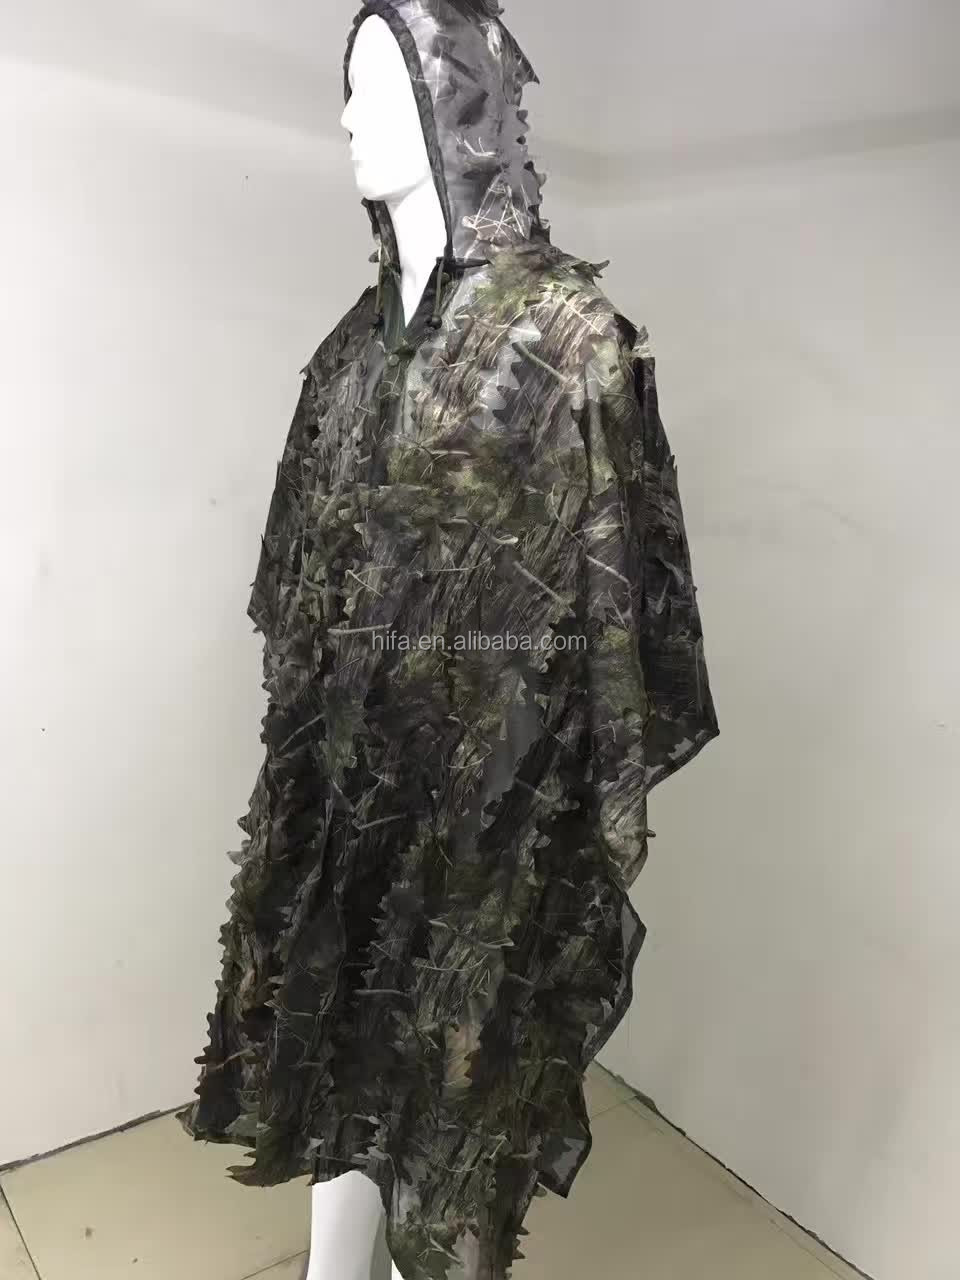 leaf ghillie suit poncho for hunting,3D forest sniper ghillie suit poncho